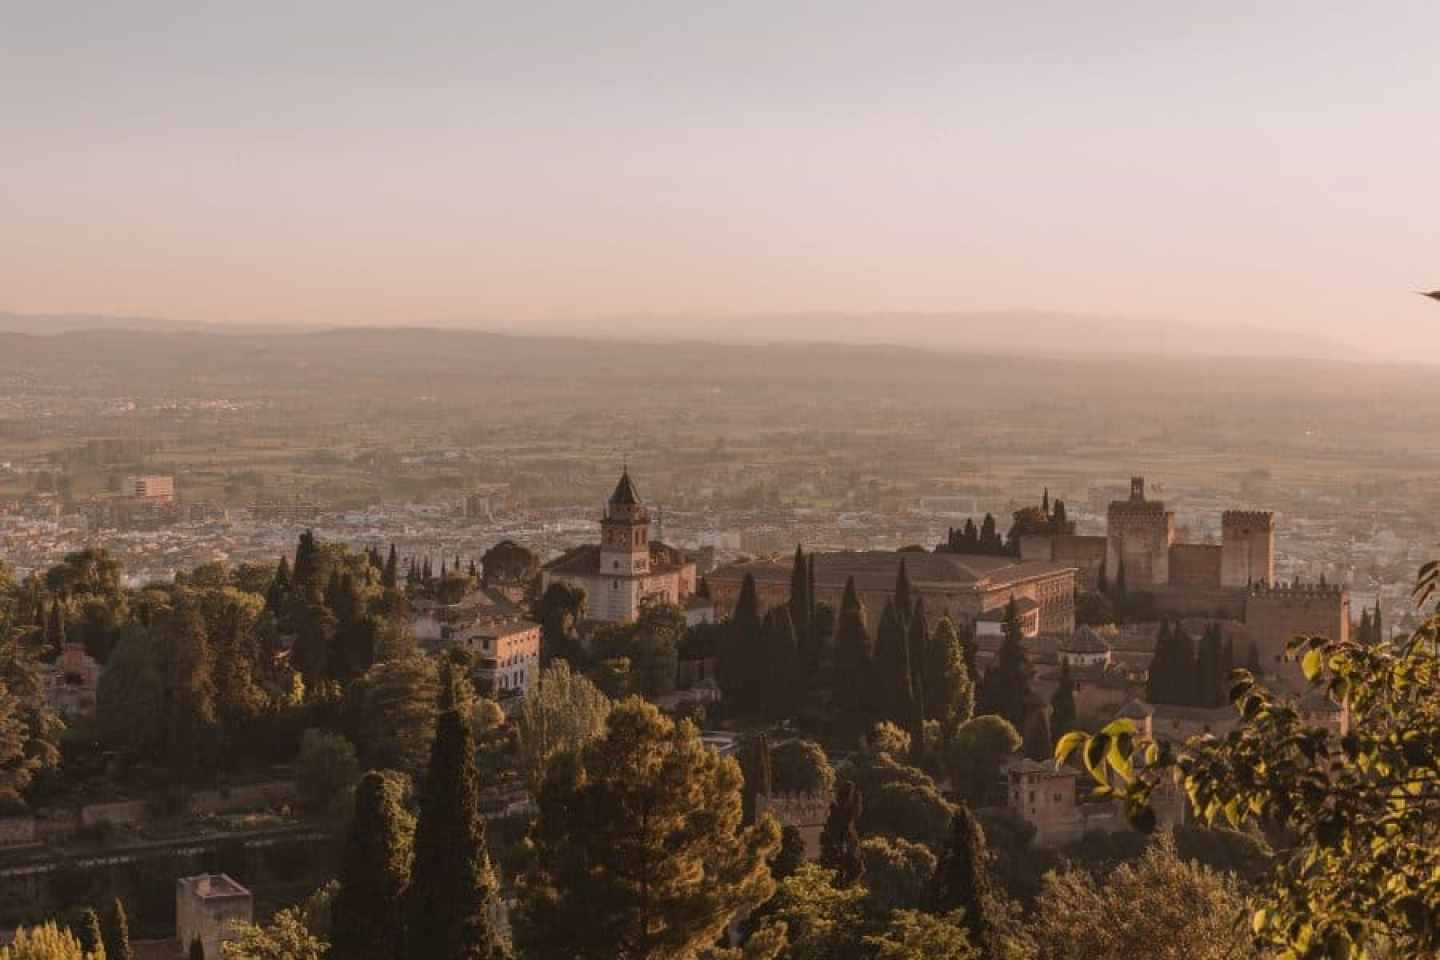 Where to Get the Best Views (and Photos!) of the Alhambra